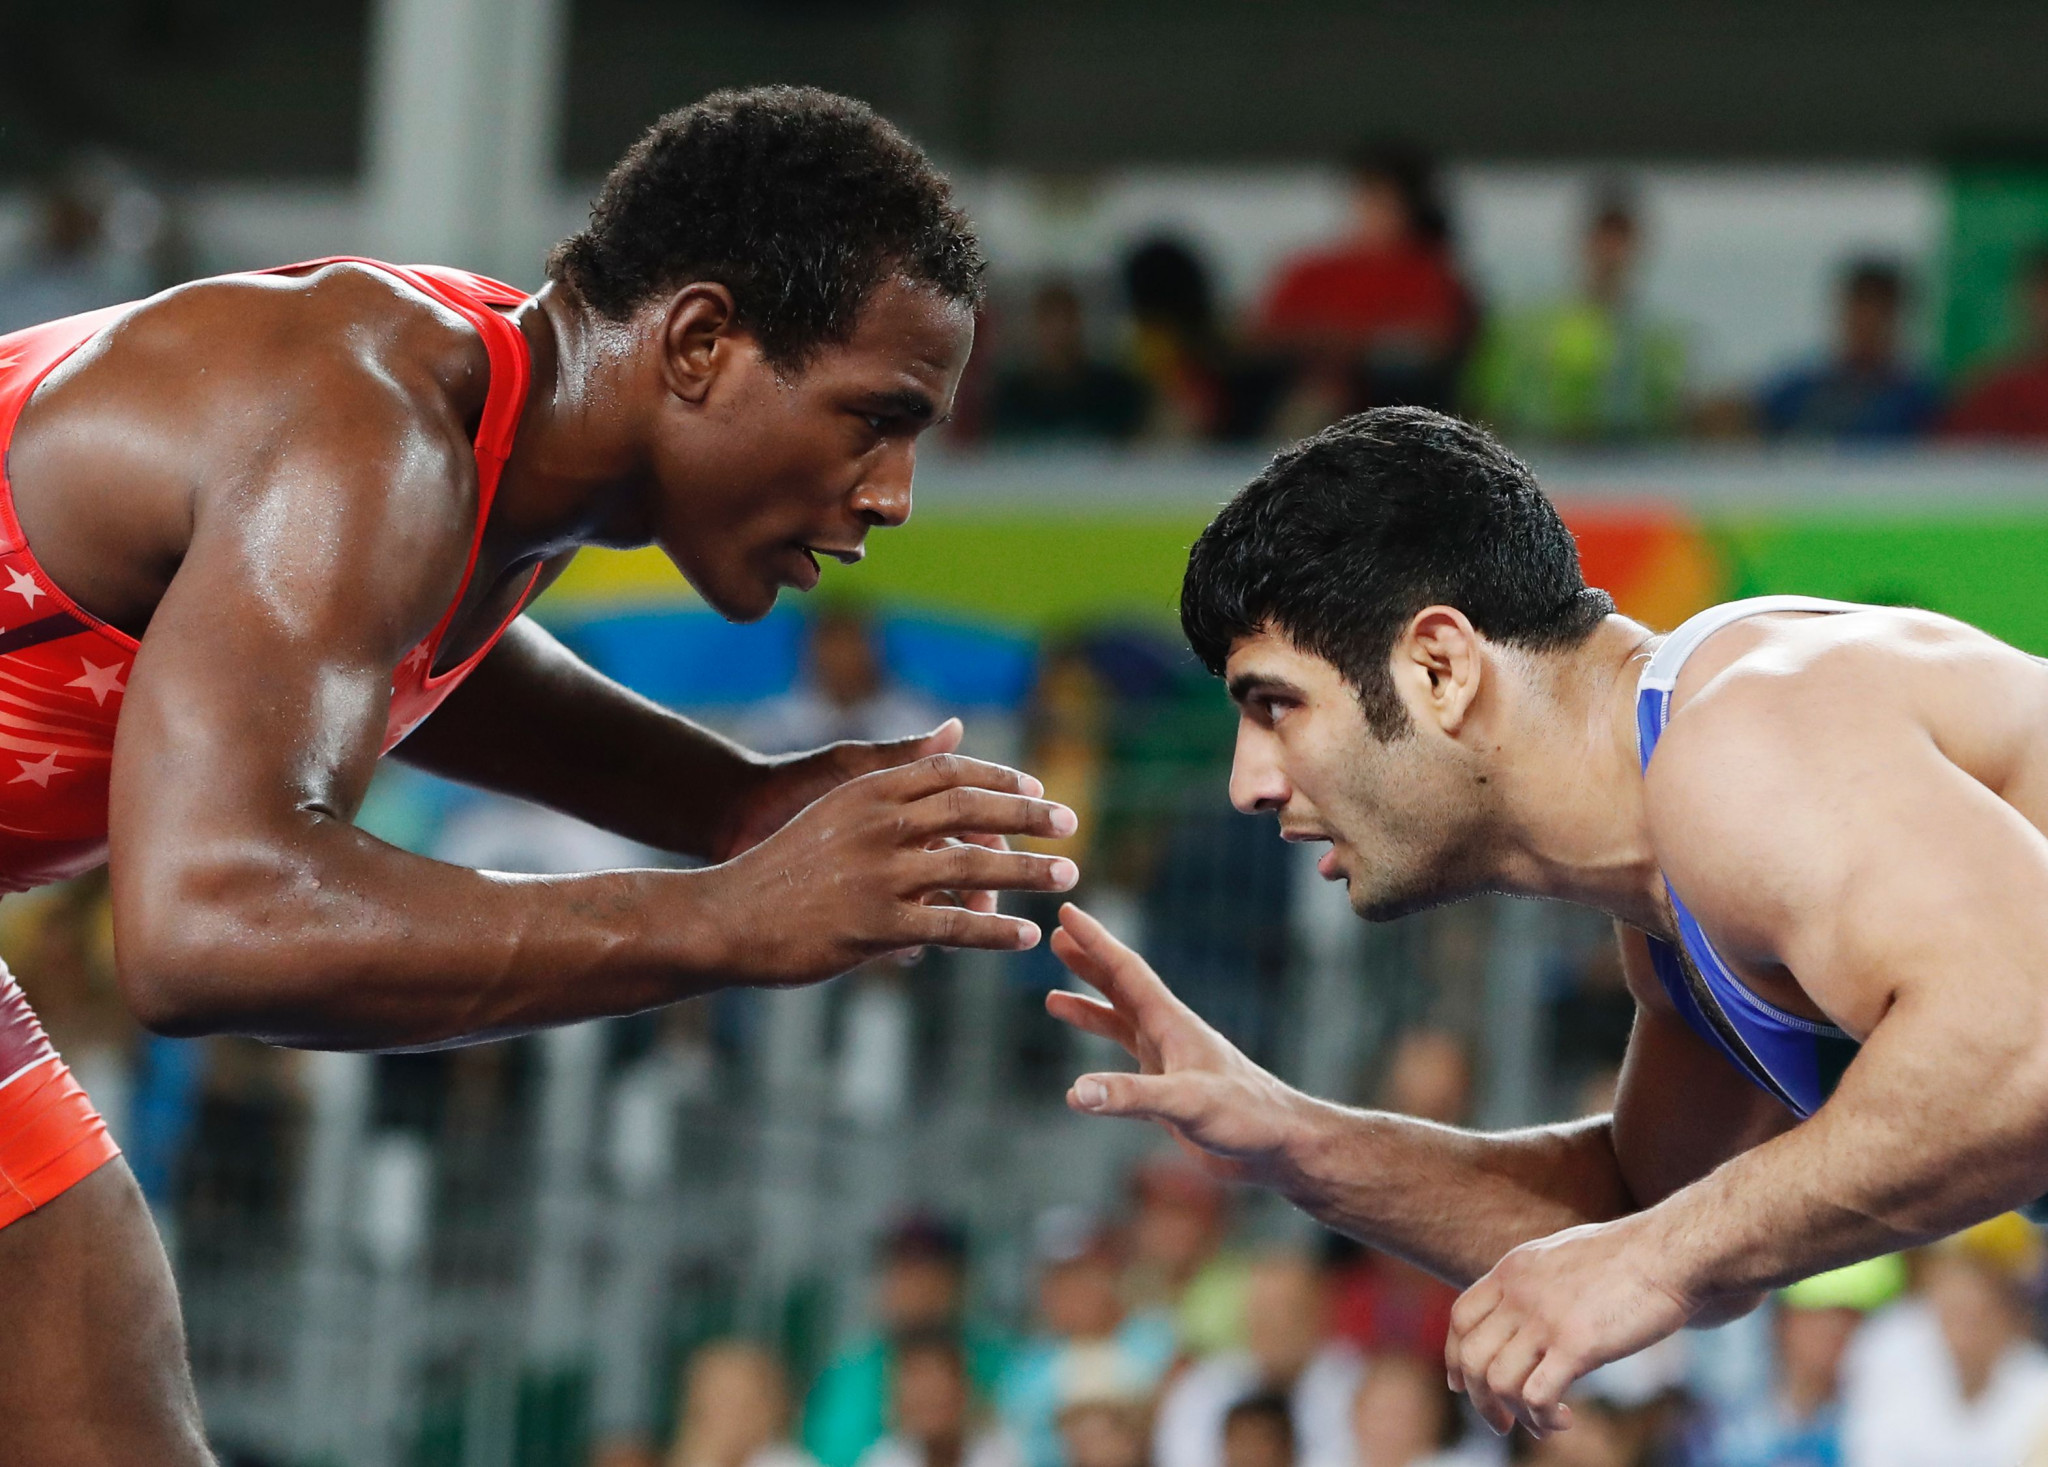 Alireza Karimi, right, is a two-time Asian champion and a World Championship bronze medallist ©Getty Images